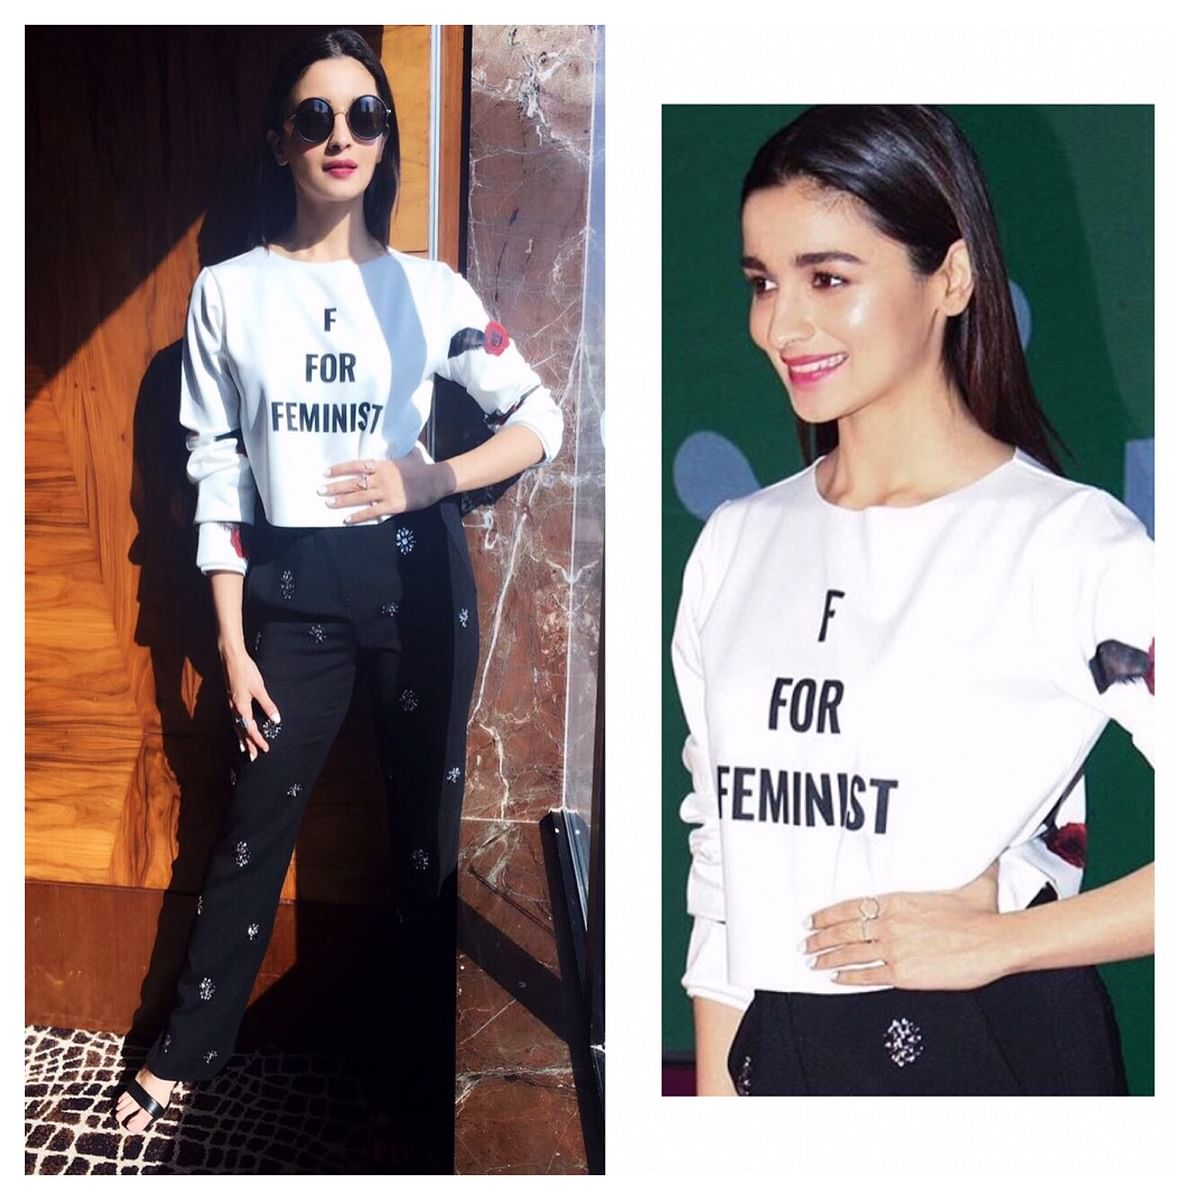 Alia Bhatt wearing an F for Feminist shirt by designer Gaurav Gupta. (Photo: Gaurav Gupta)